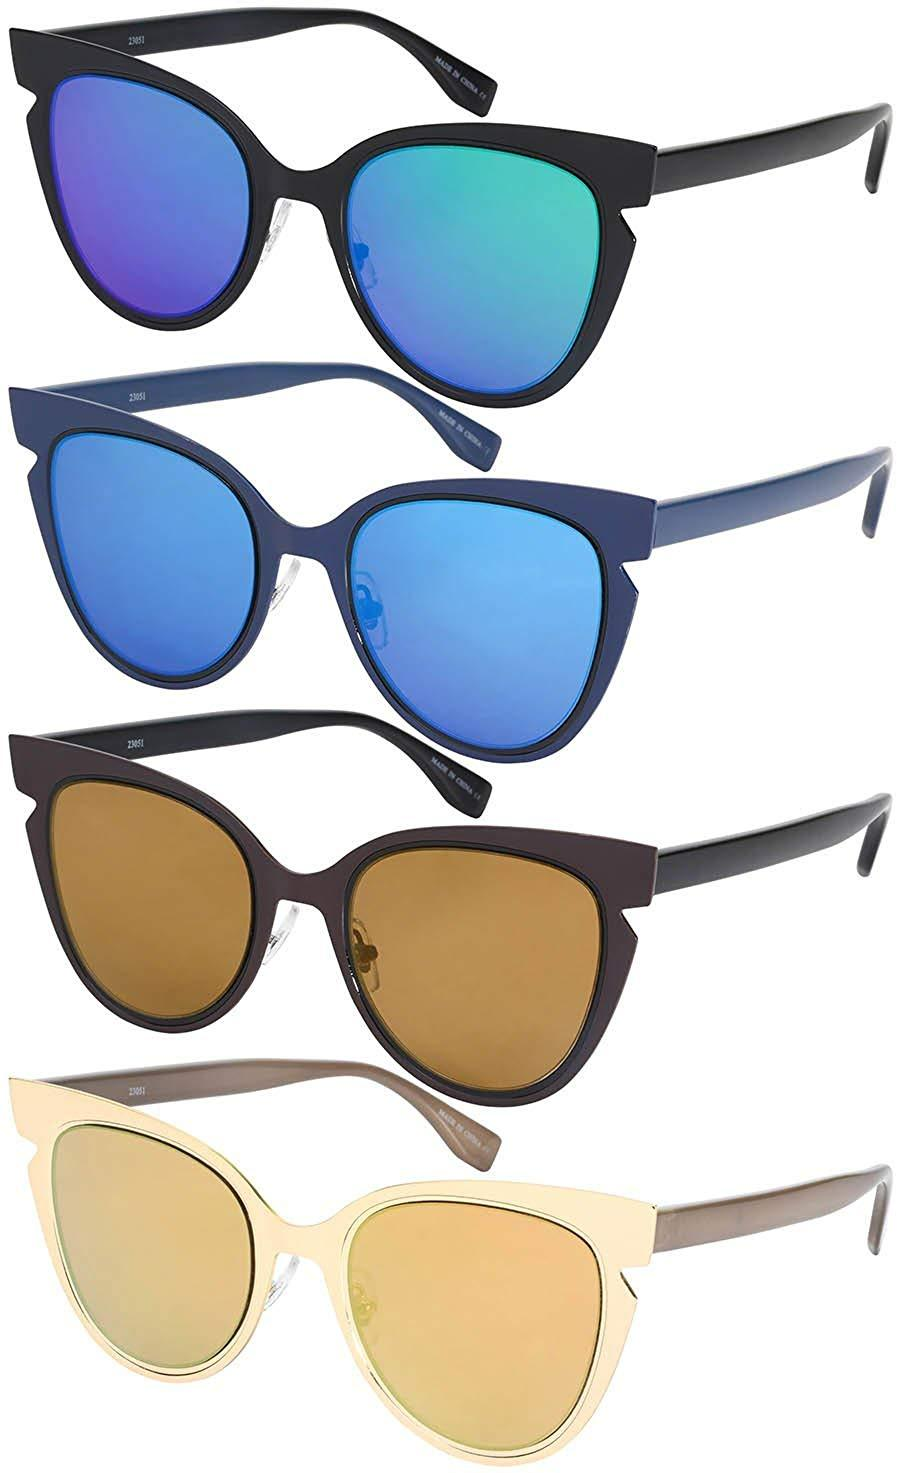 Gretchen Sunglasses - Final Sale